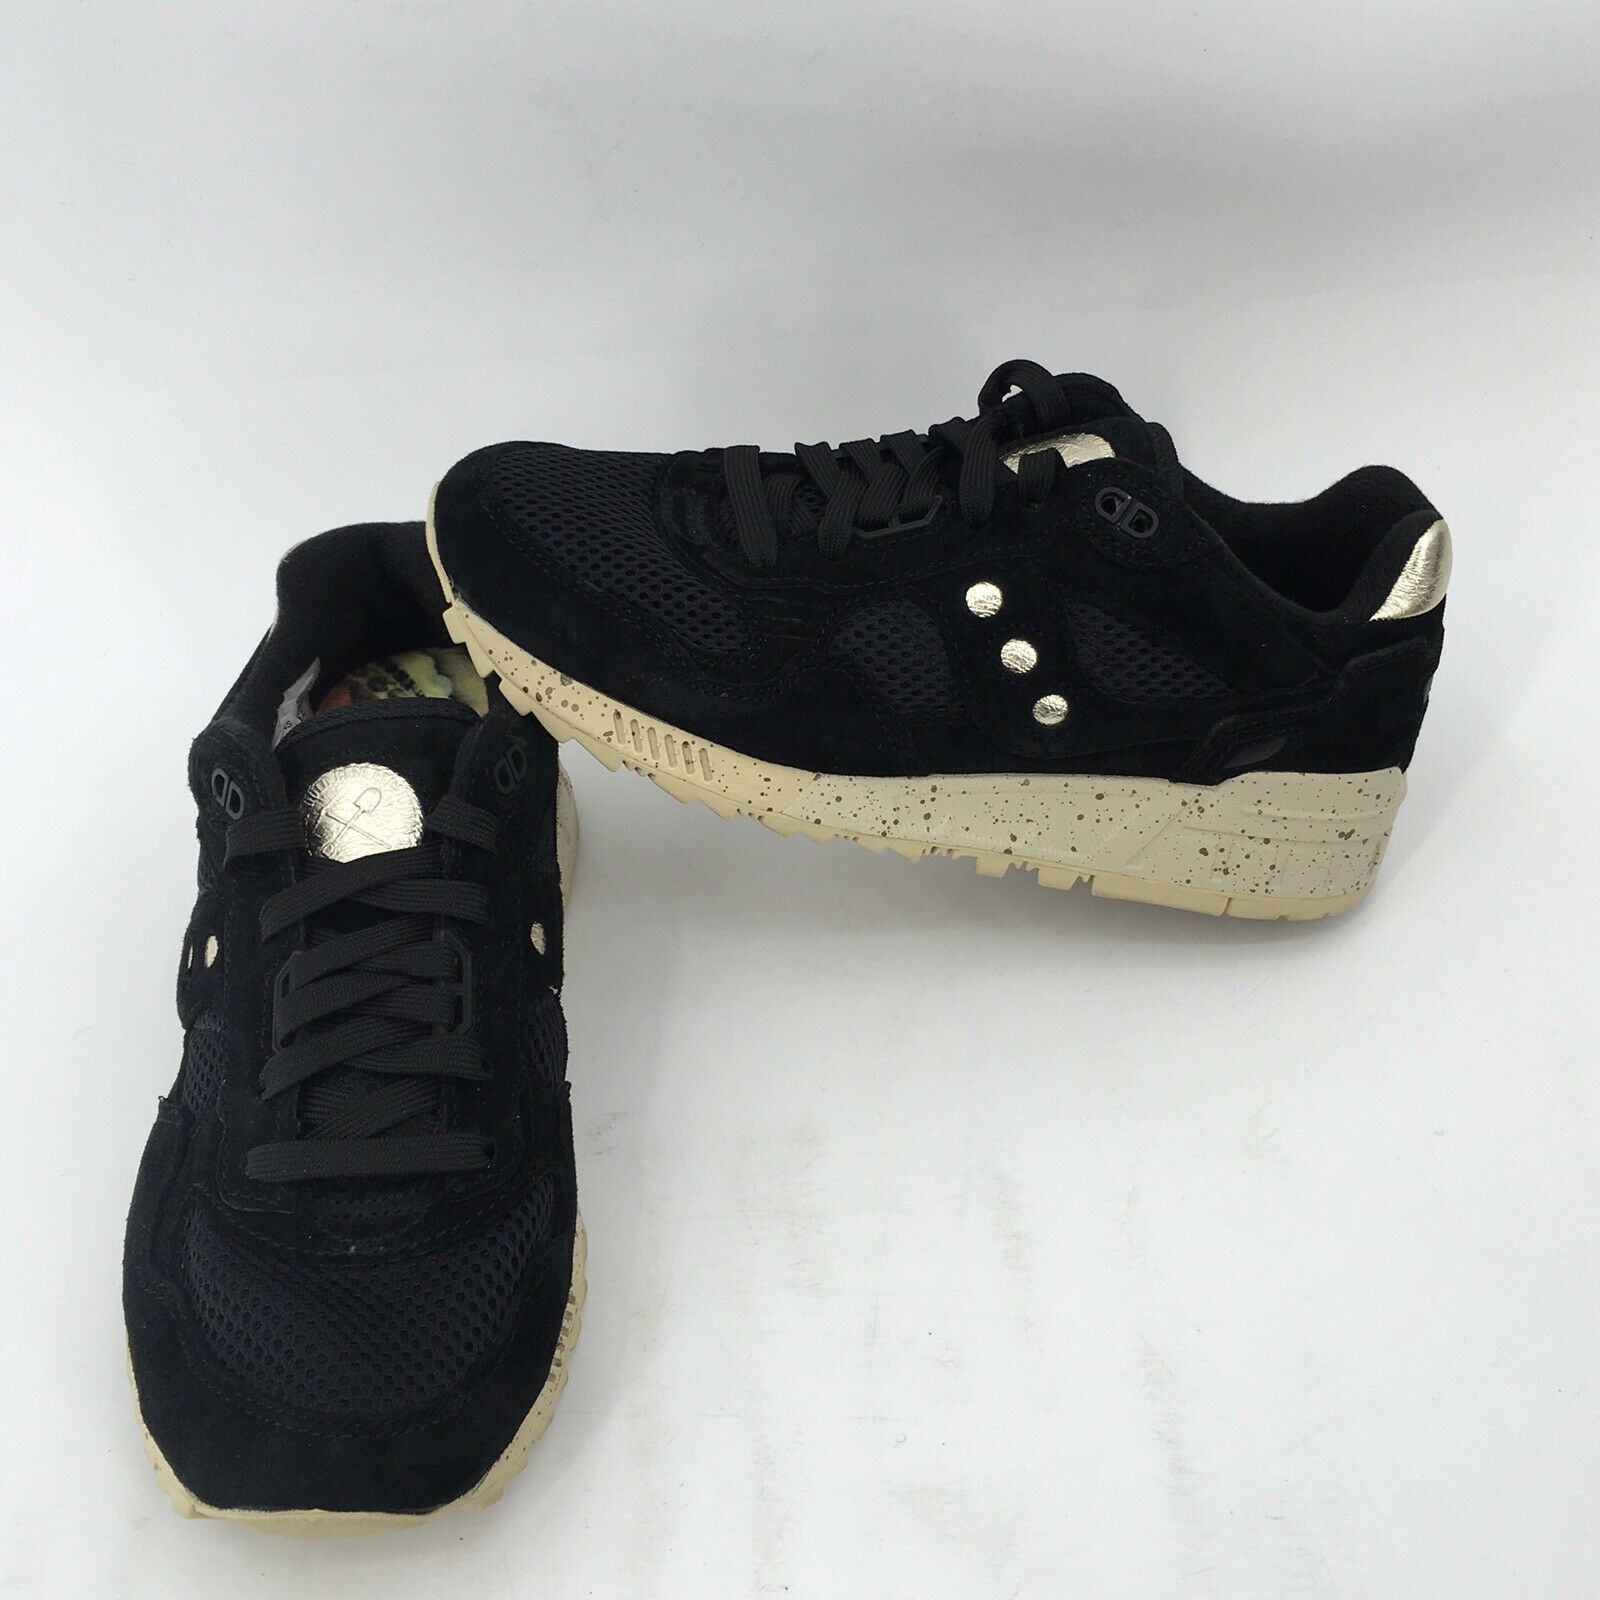 SAUCONY SHADOW 5000 gold RUSH BLACK gold OFF WHITE MENS SNEAKERS S70414-1 sz 5